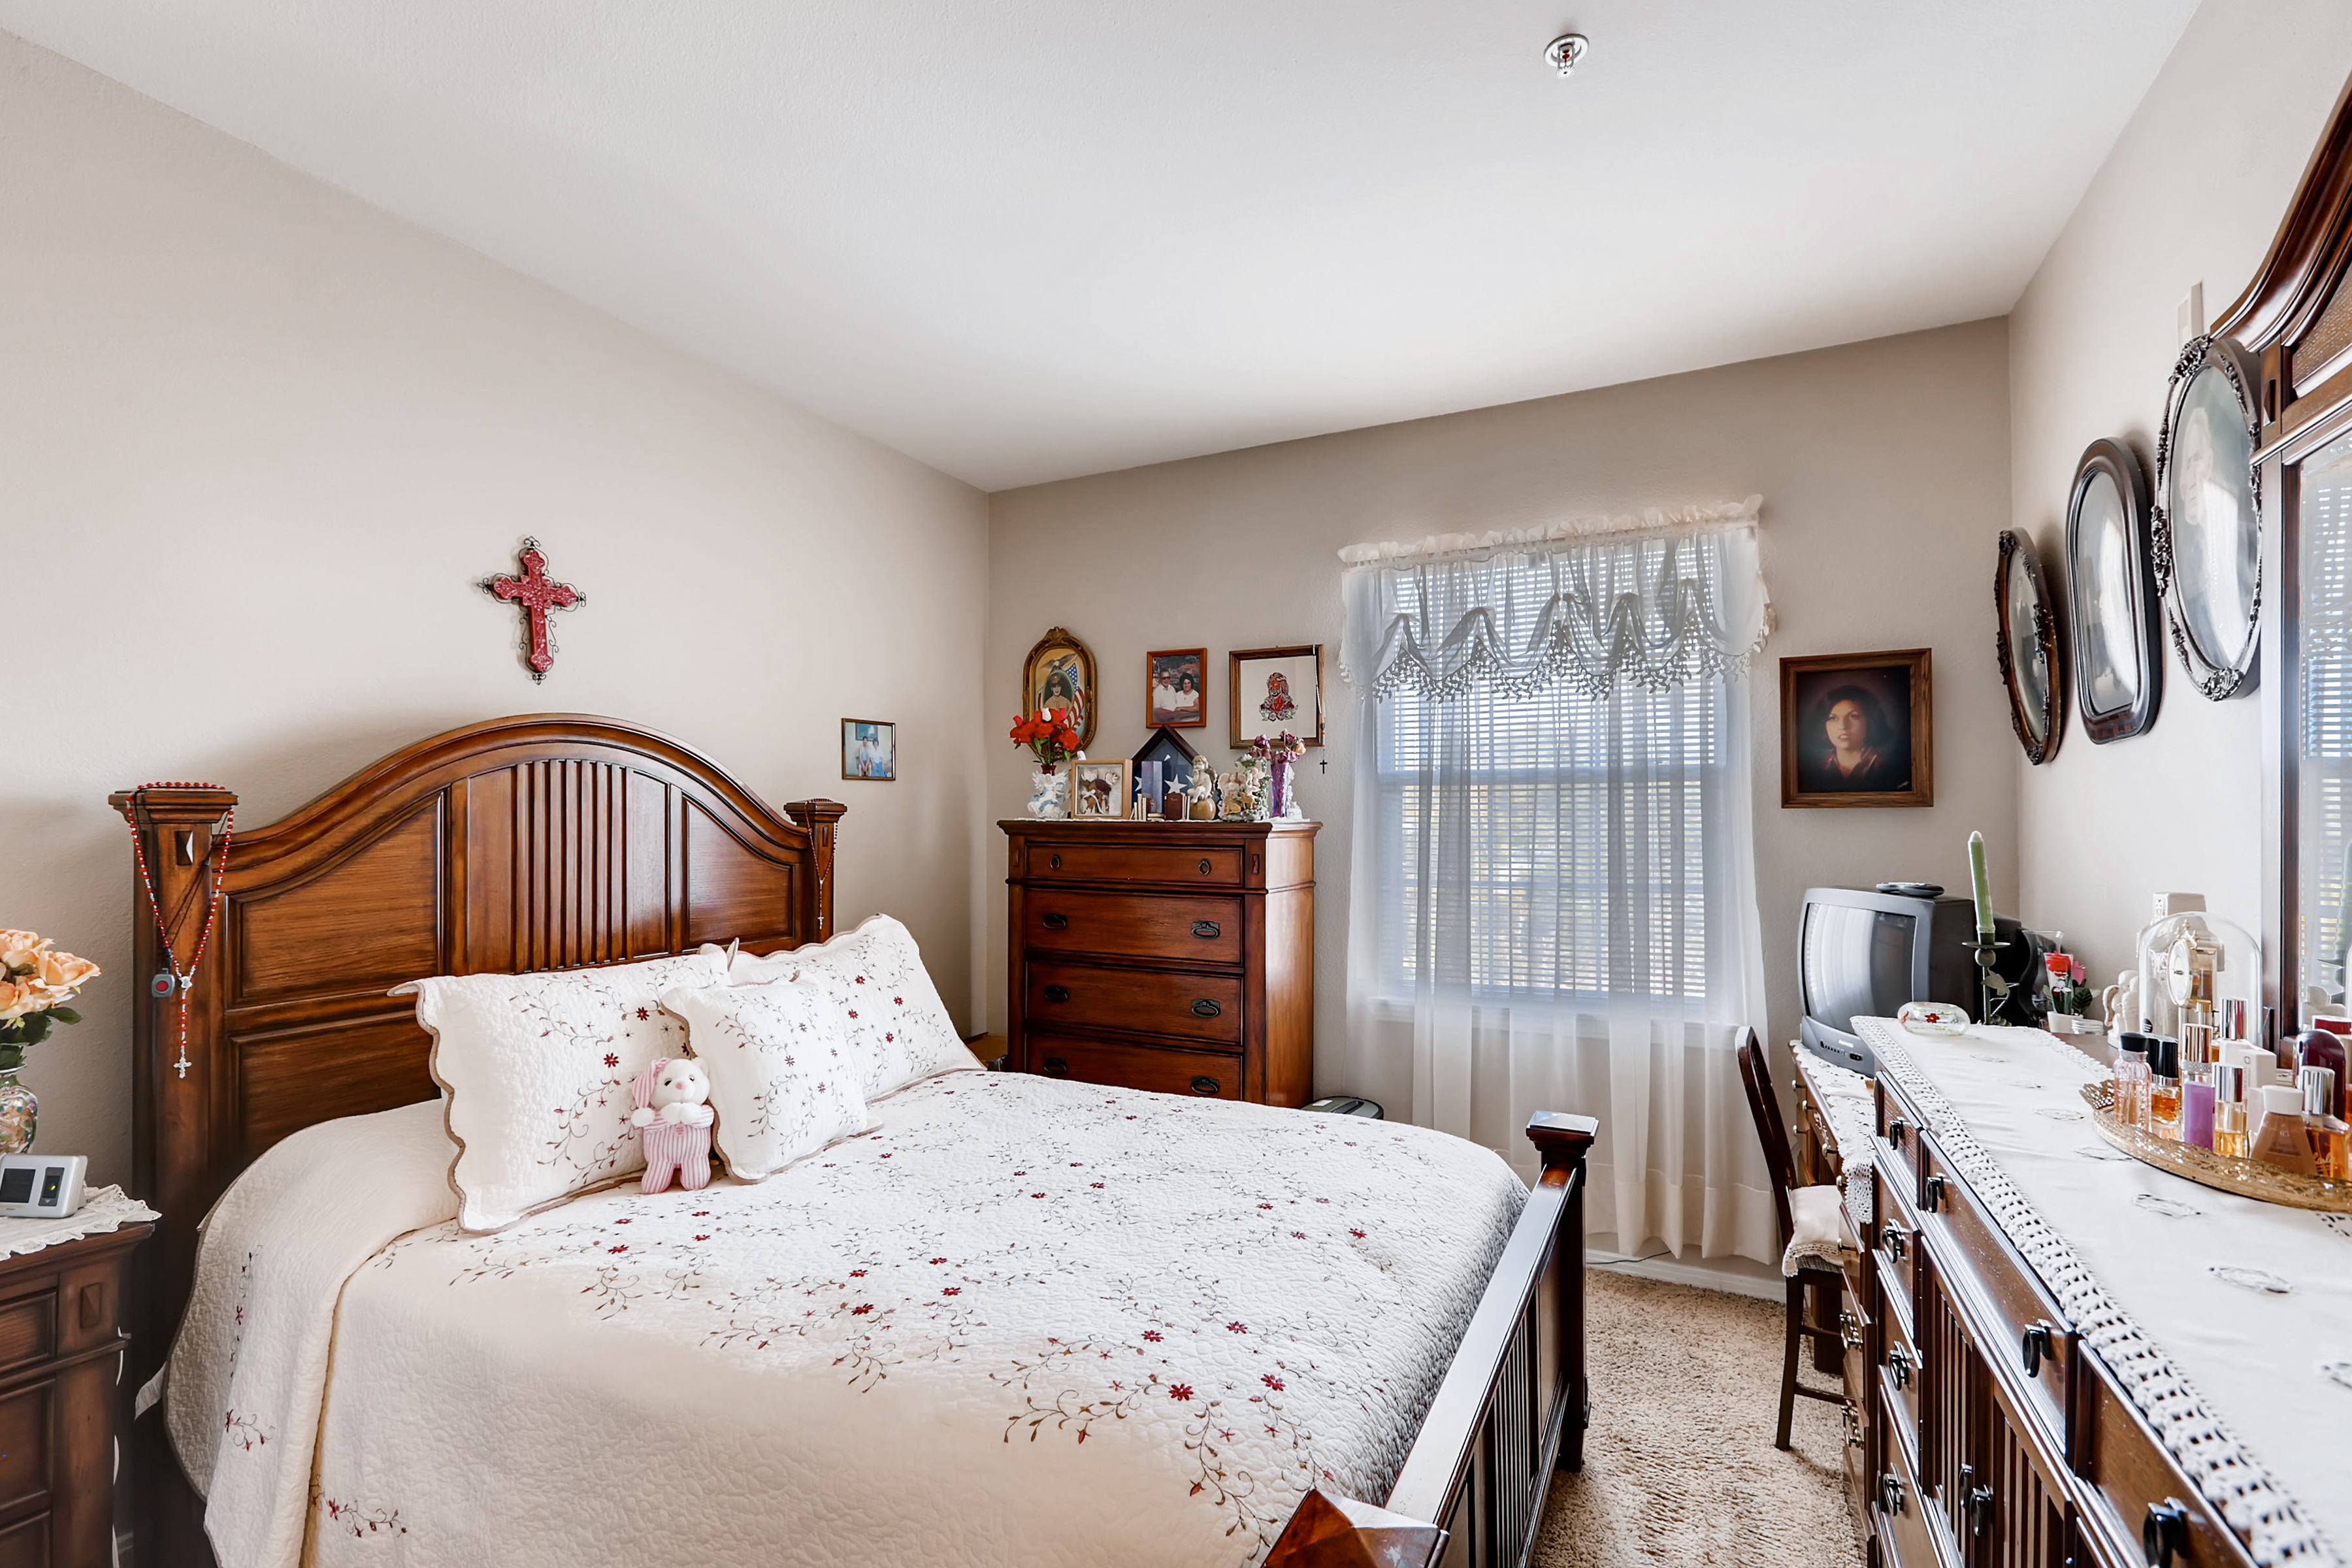 Denver co apartments for rent casa dorada home - One bedroom apartments in denver co ...